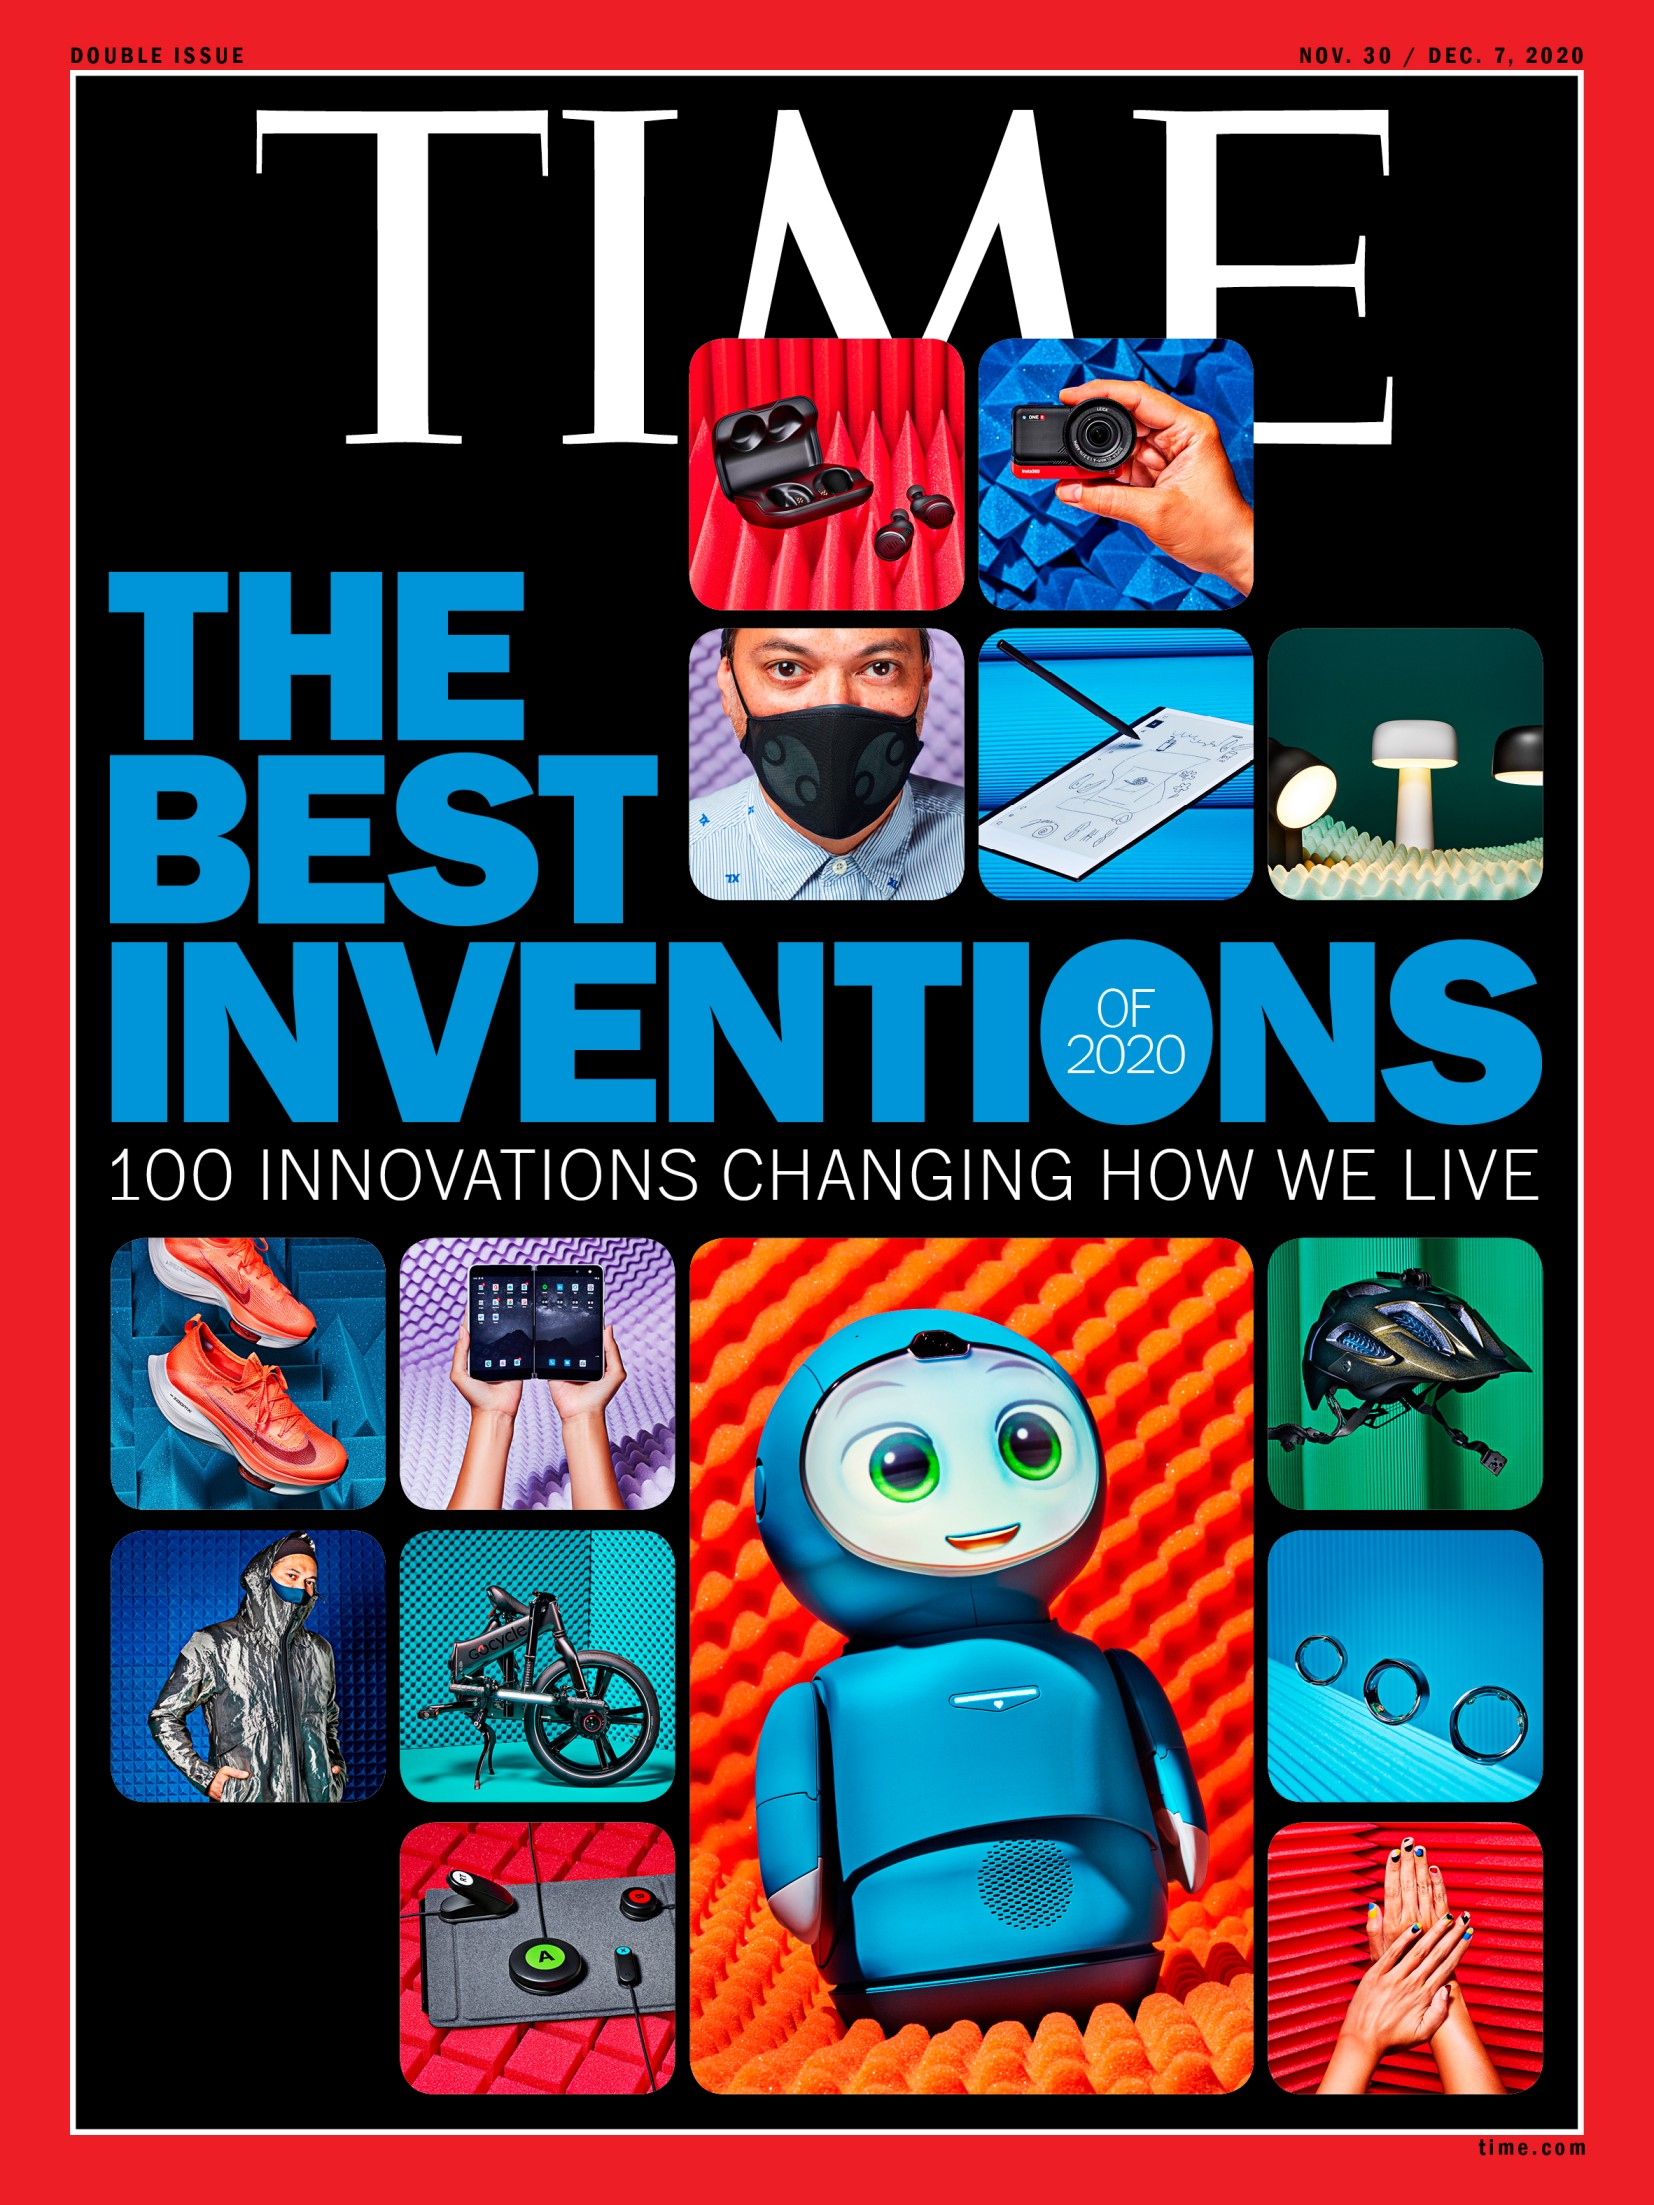 Sepura is on TIME's Best Inventions of 2020 List